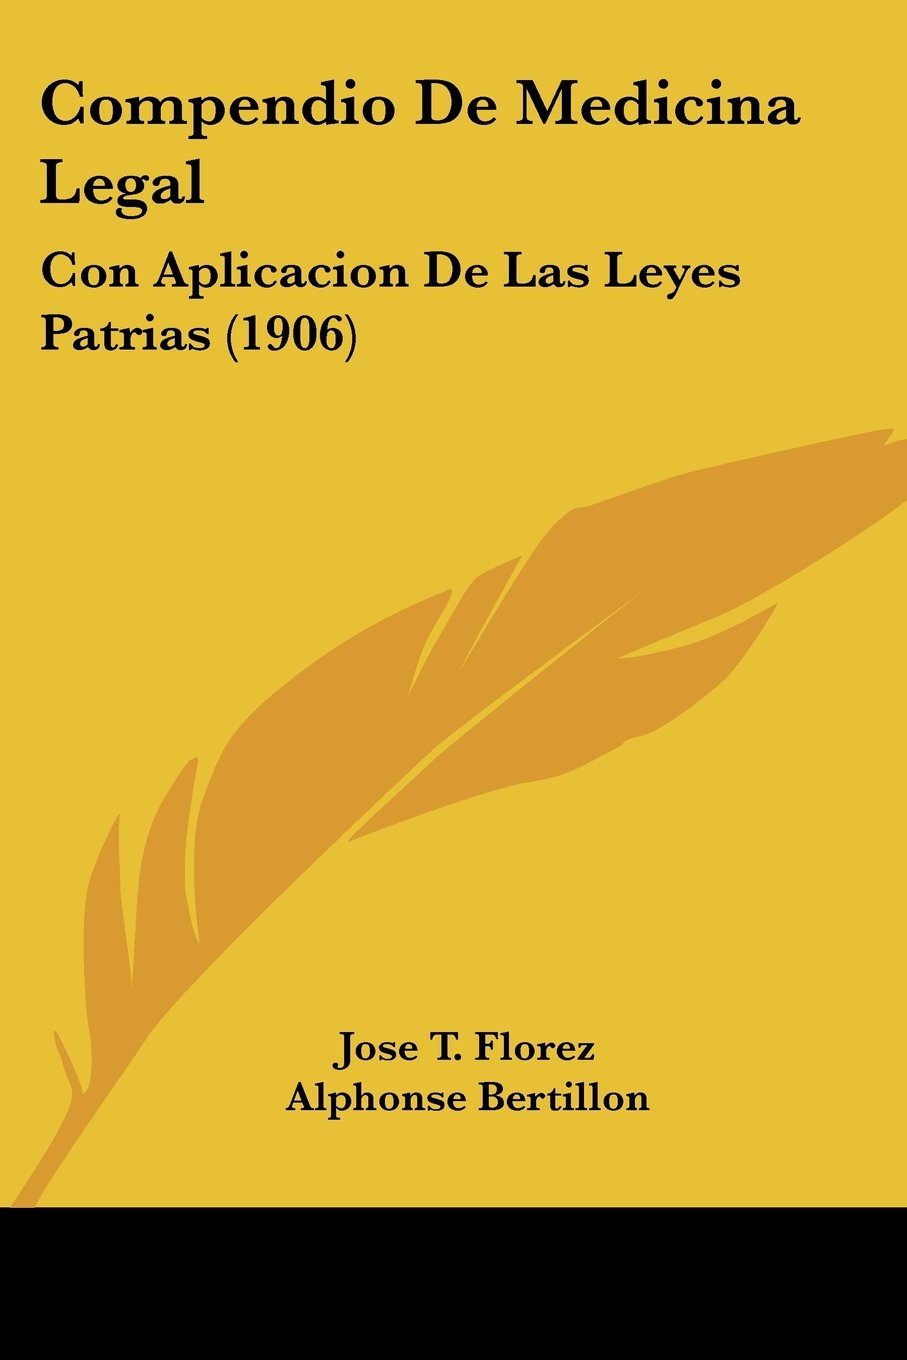 Download Compendio De Medicina Legal: Con Aplicacion De Las Leyes Patrias (1906) (Spanish Edition) pdf epub